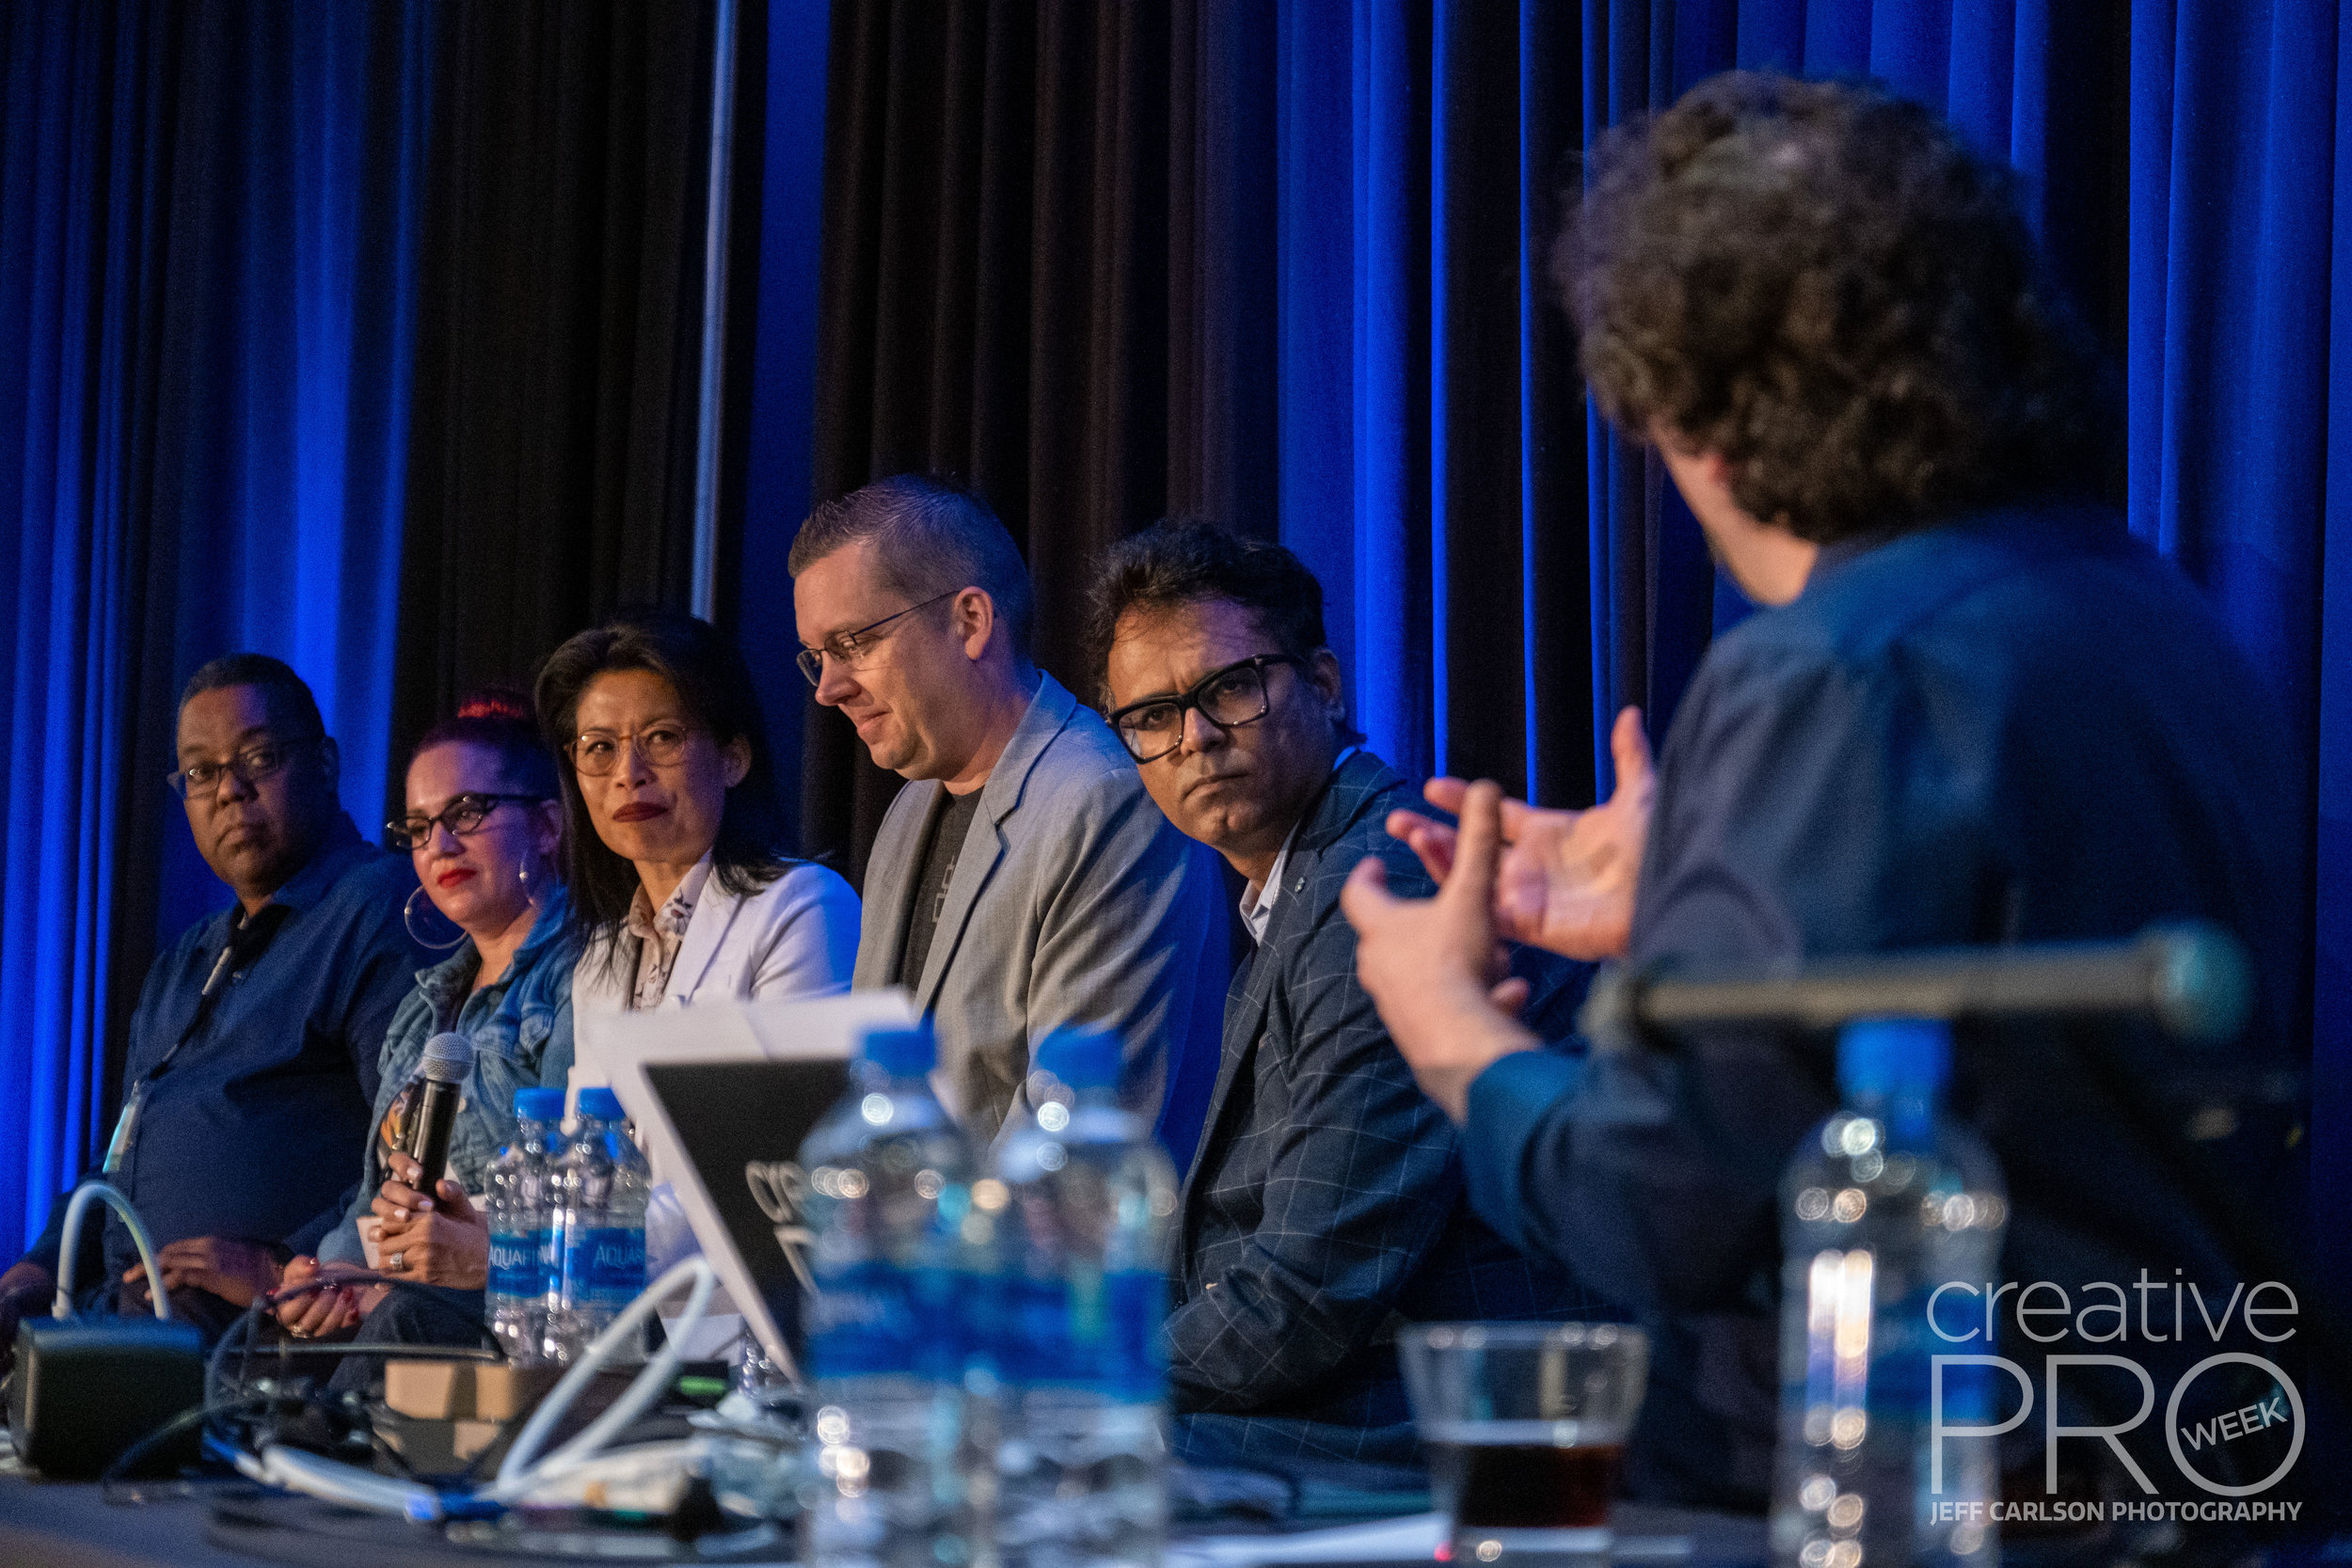 InDesign 20th Anniversary Panel at CreativePro Week 2019  Camera: Fujifilm X-T3 Shutter speed: 1/125 sec Aperture: f/2.8 ISO: 3200 Lens: Fujifilm XF 16-55mm f/2.8 LM WR Photo: Jeff Carlson, courtesy of CreativePro Week